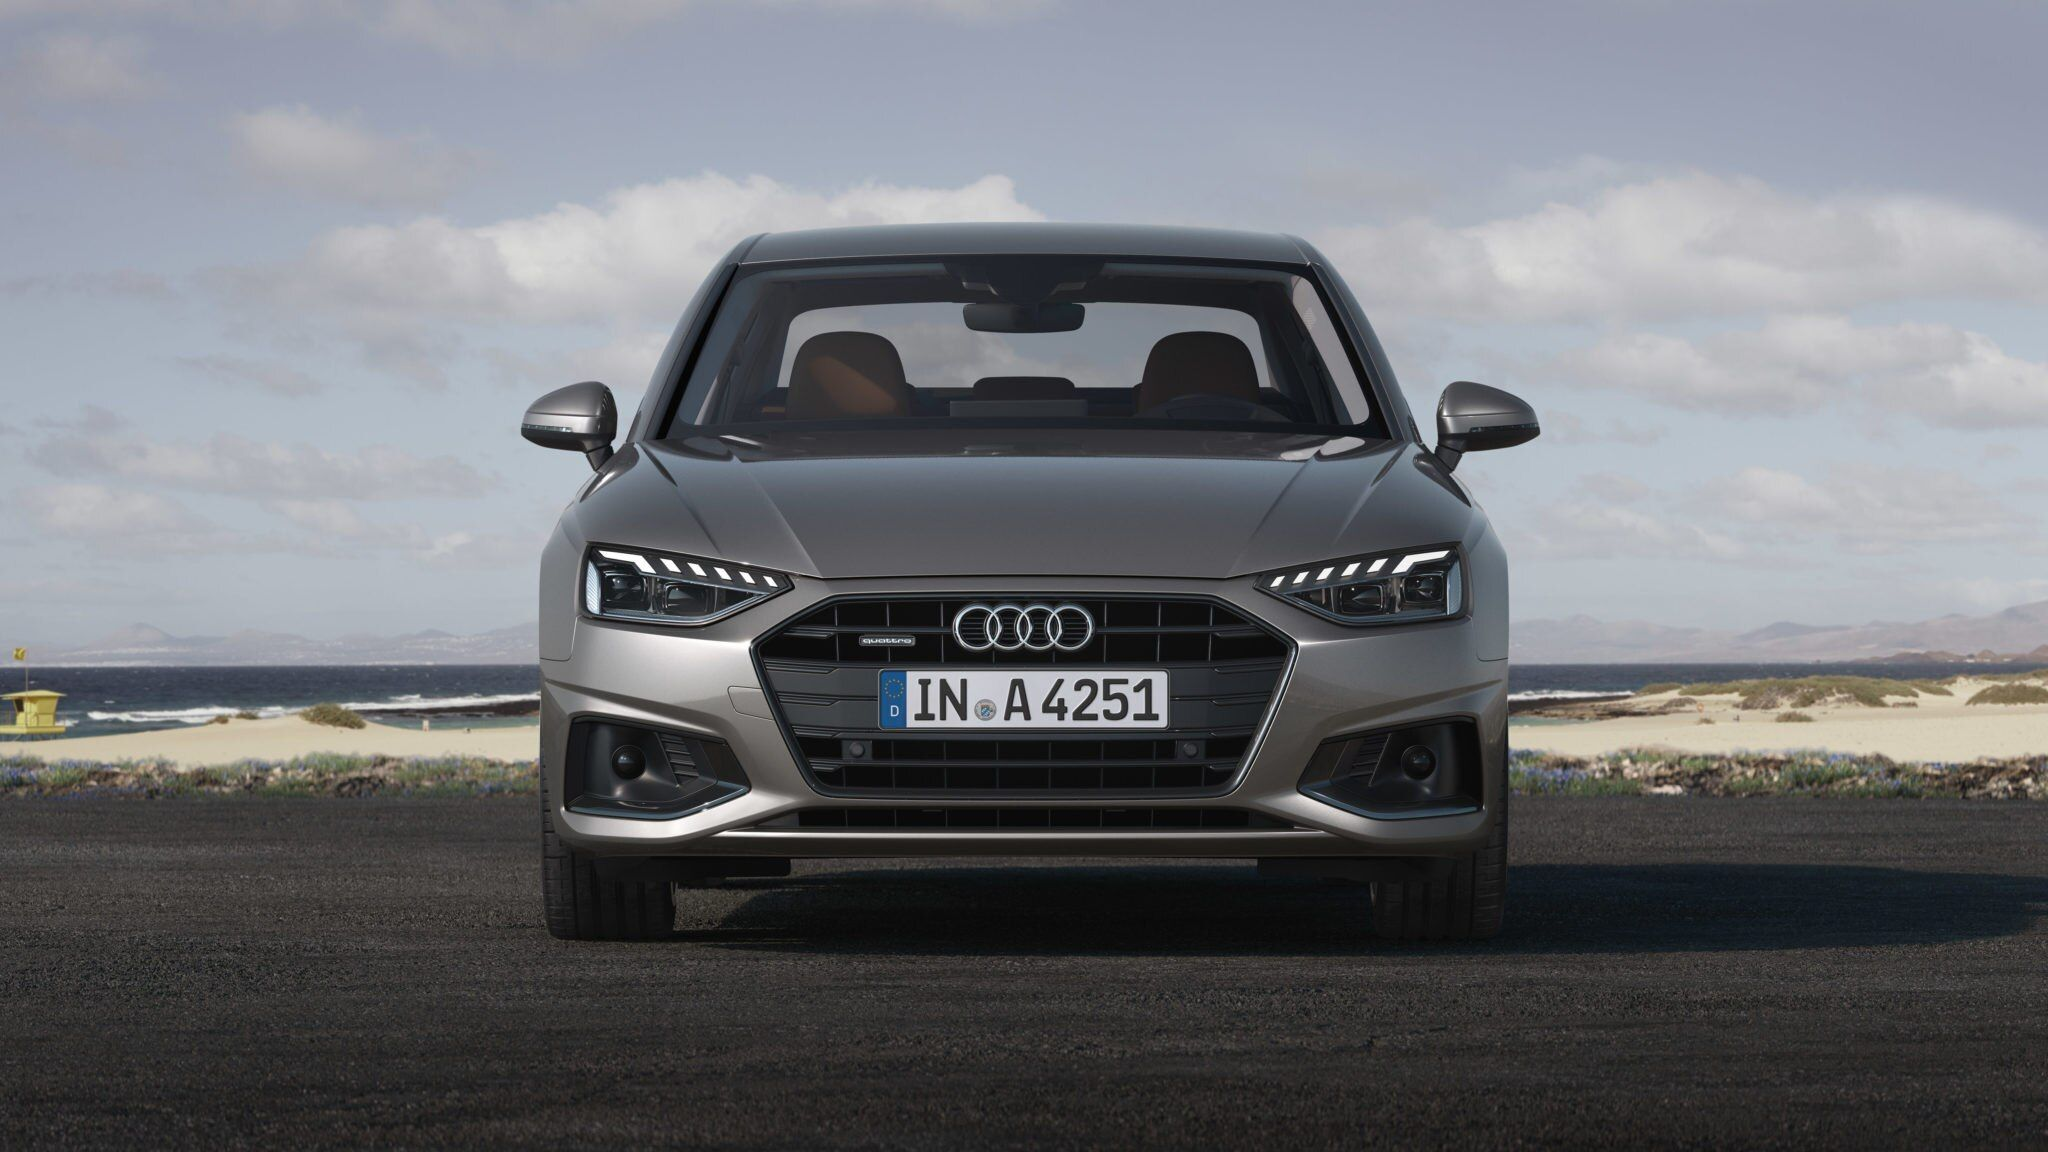 The Fate Of The Next Audi A4 Has Been Decided It Stays A Proper Audi With Images Audi A4 Facelift Audi